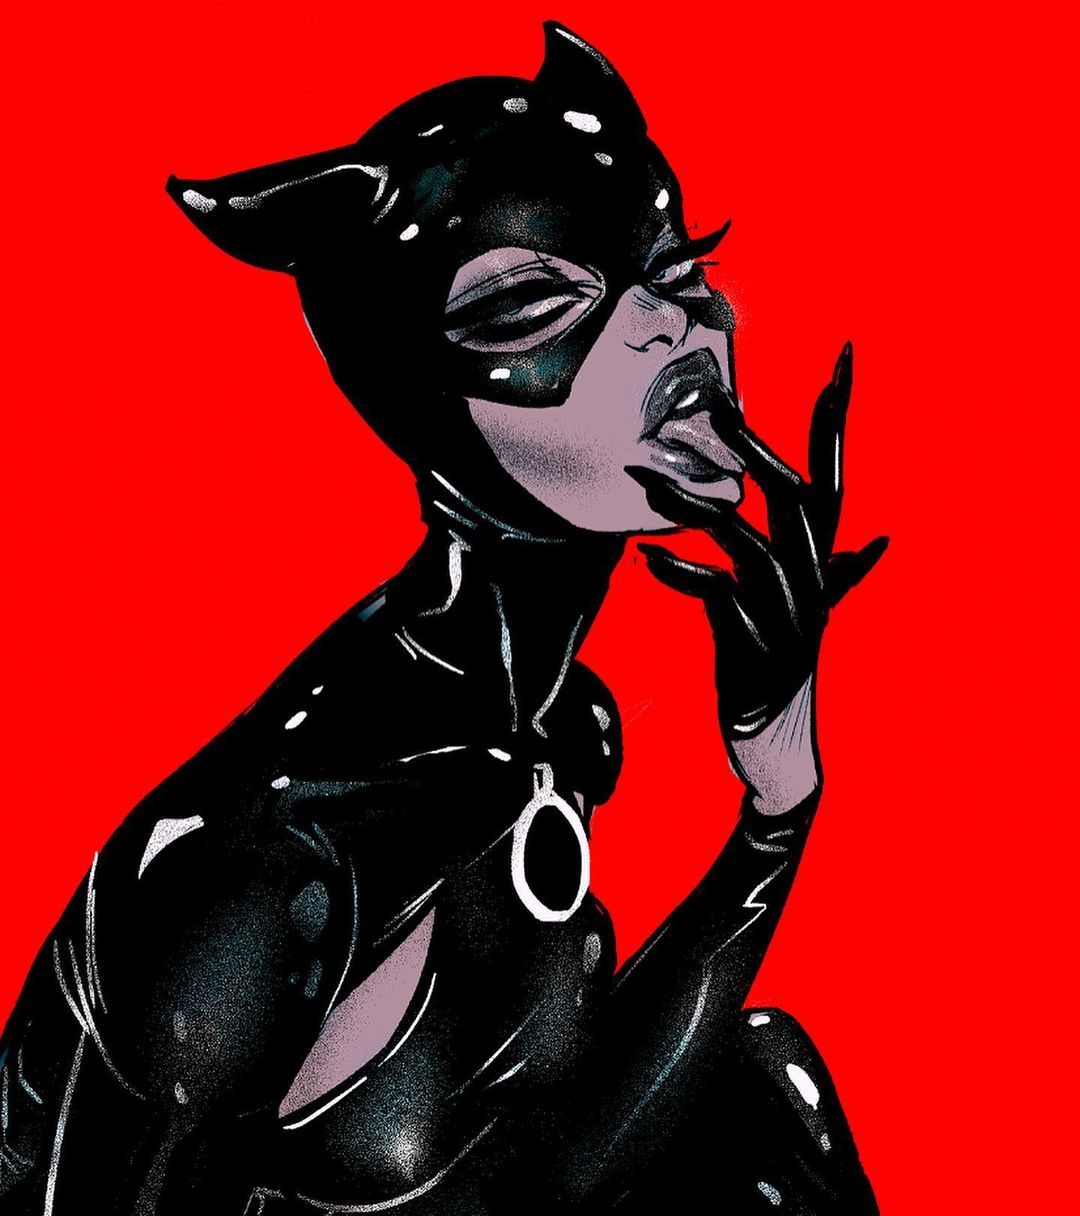 Catwoman x Babs Tarr